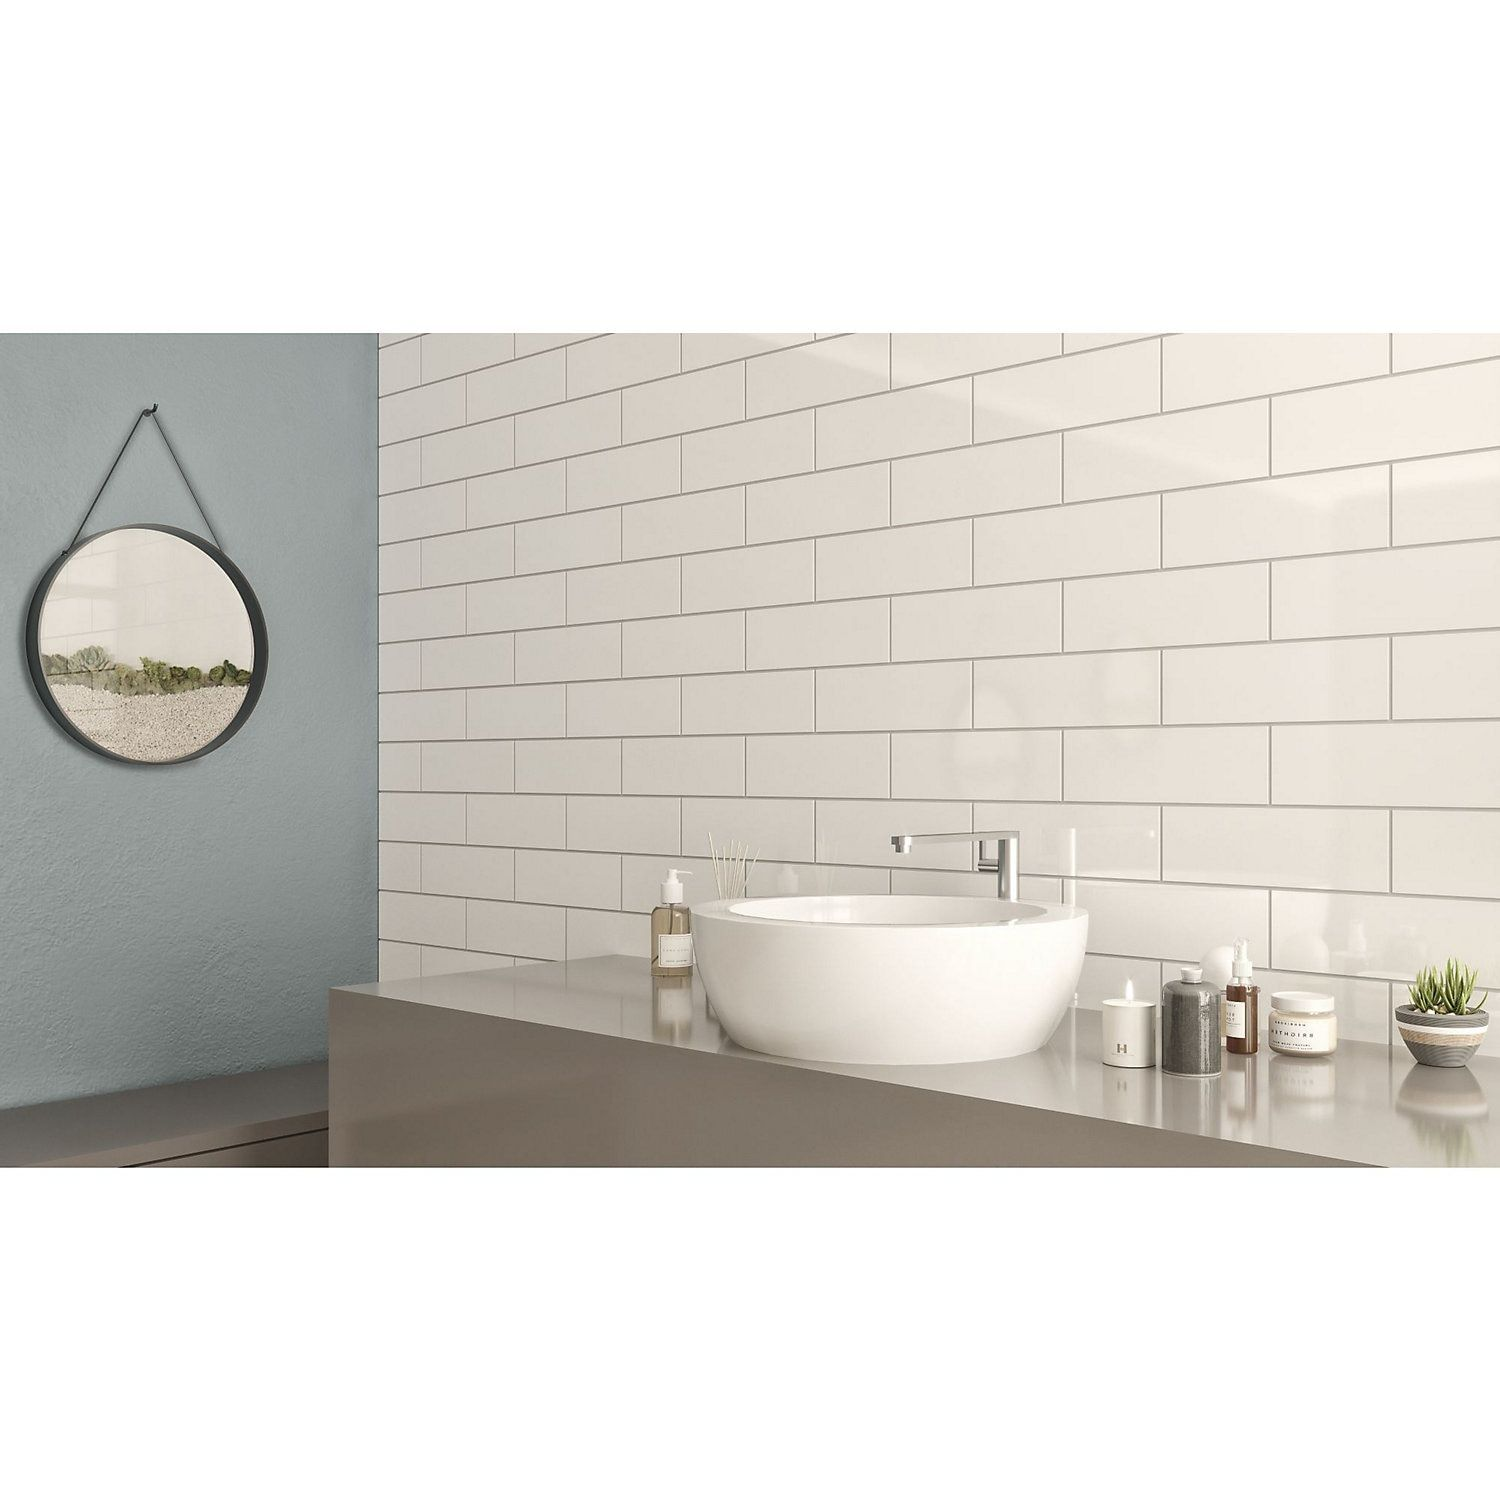 Windsor White Gloss Ceramic Wall Tile Pack Of 30 L 300mm W 100mm Ceramic Wall Tiles Wall Tiles White Gloss